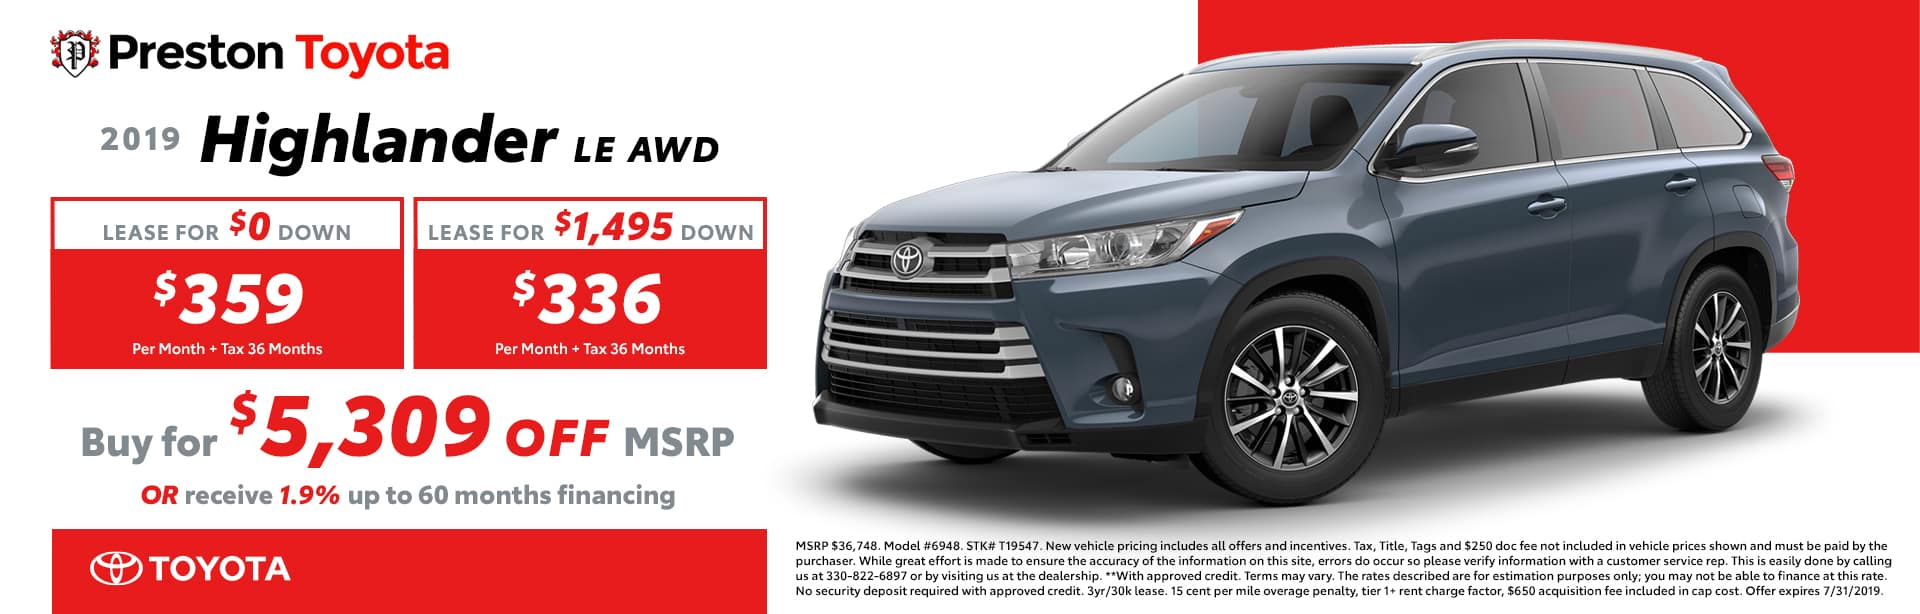 July special on the 2019 Toyota Highlander